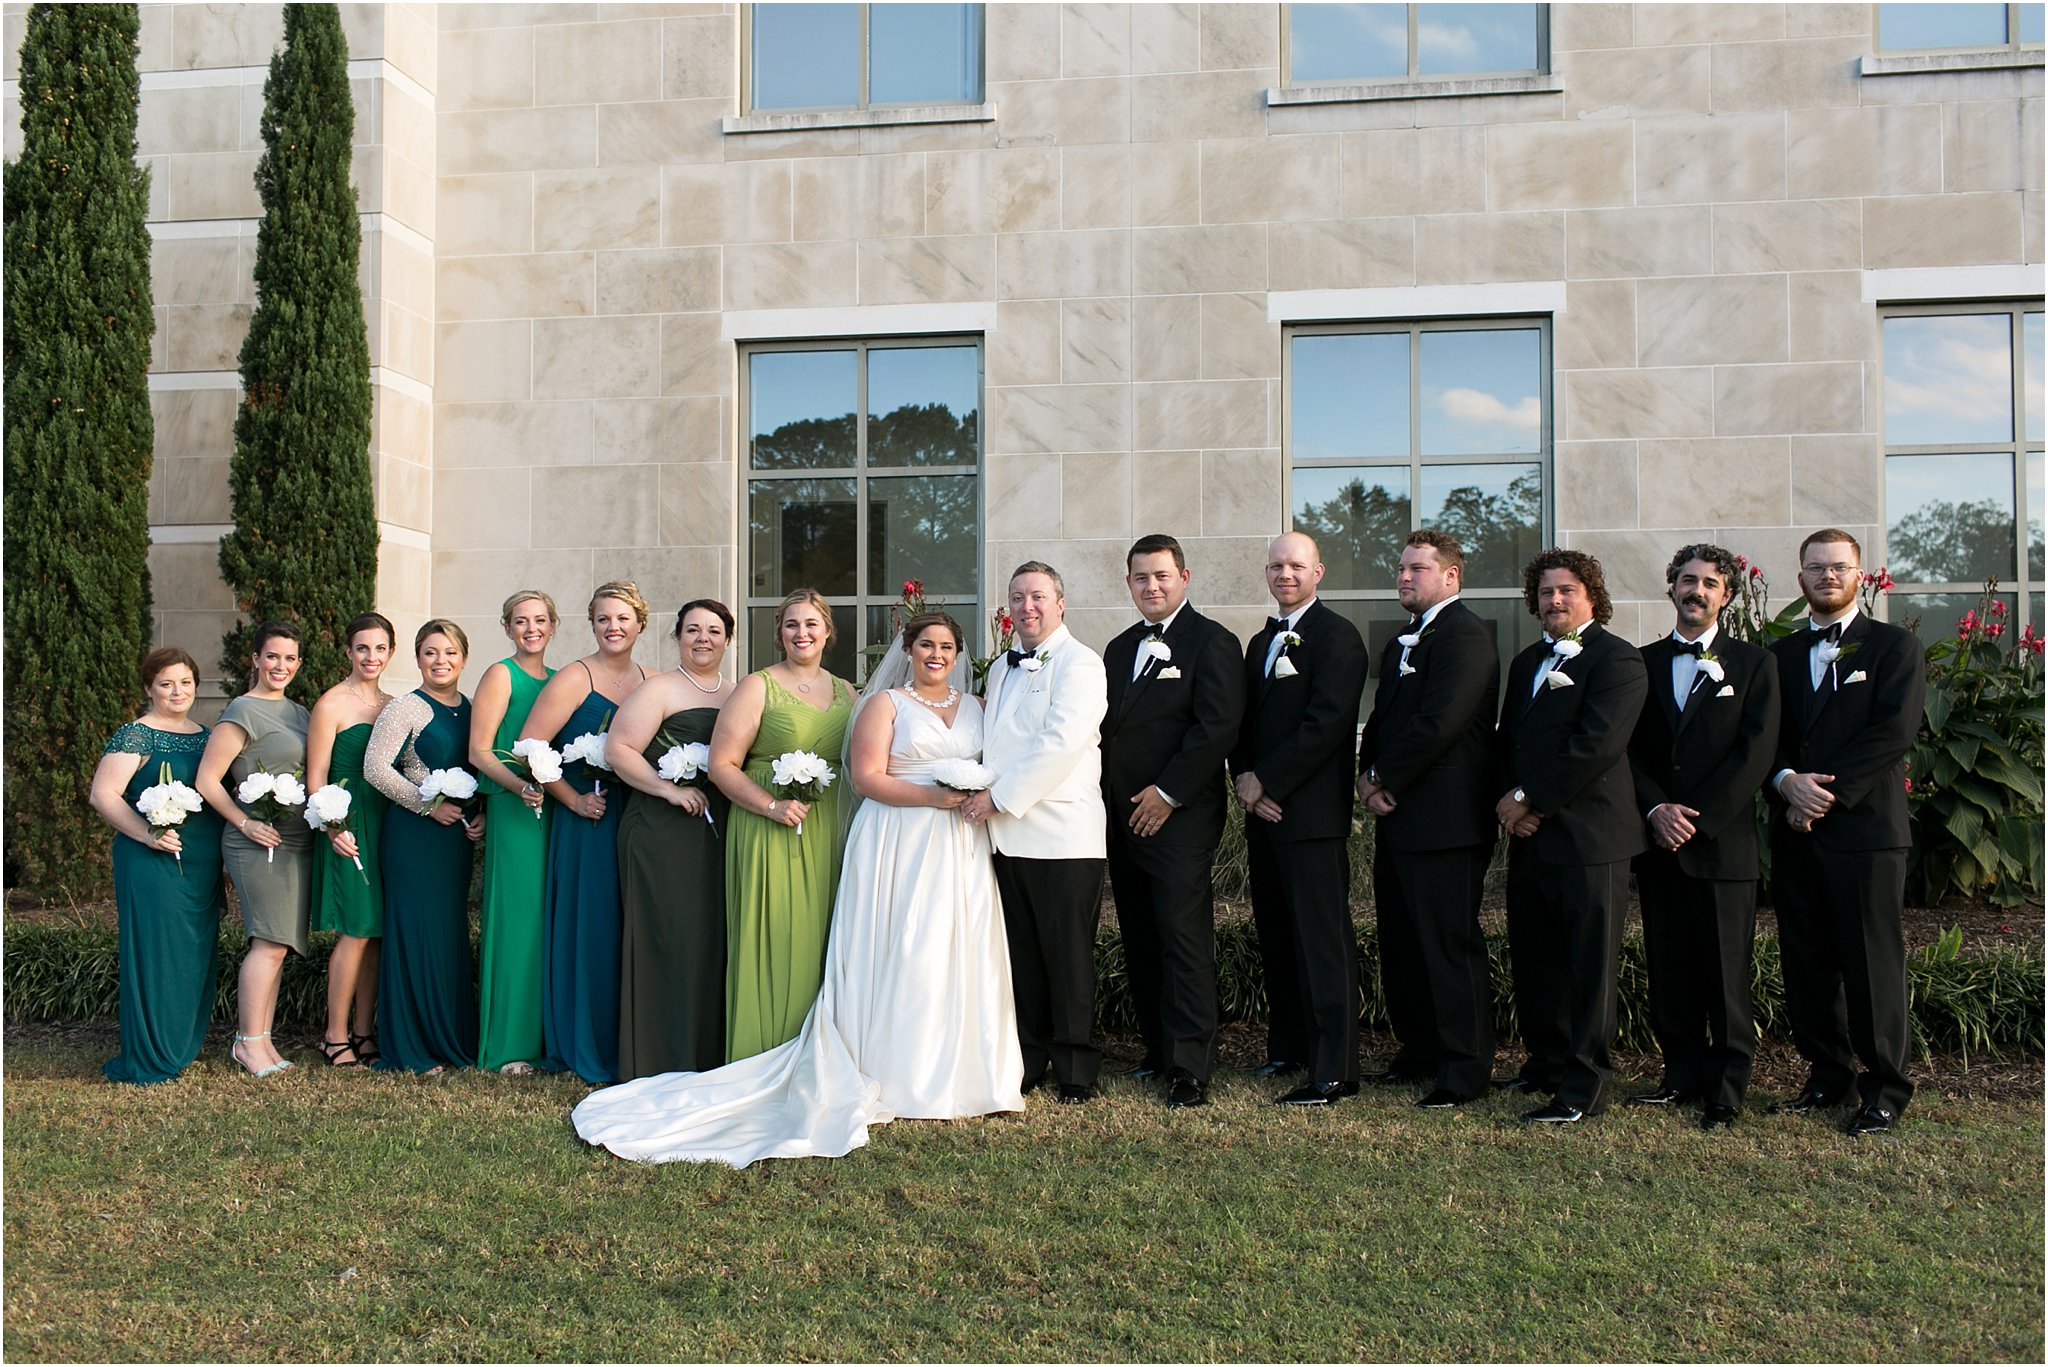 va_jessica_ryan_photography_virginia_wedding_norfolk_harrison_opera_house_norfolk_arts_district_portraits_3795